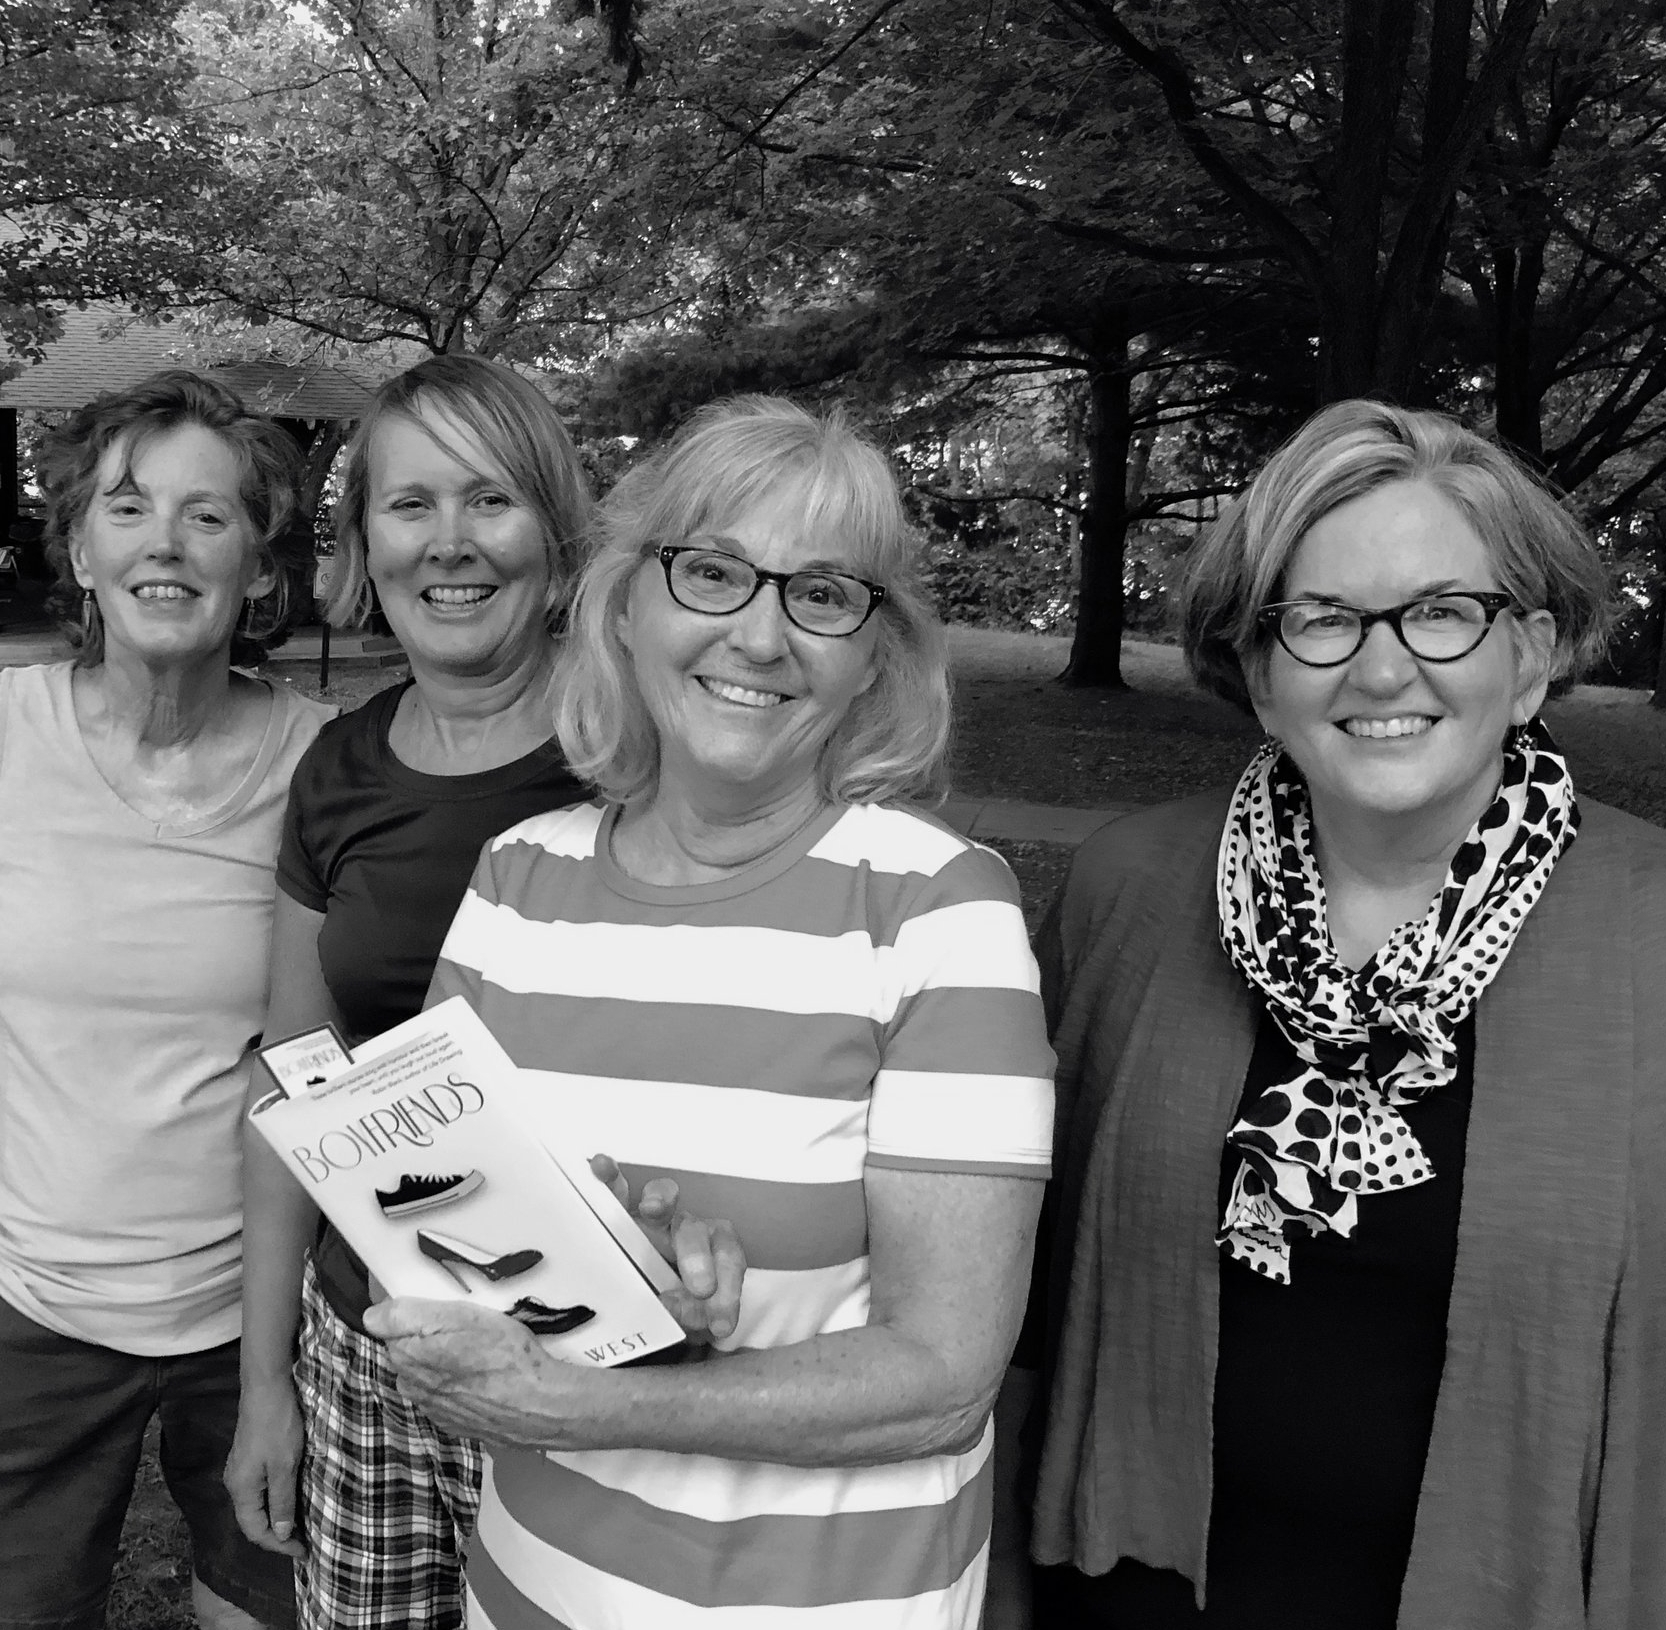 Bonnie with a copy of Boyfriends, attending an outdoors book club... can't see that catching on in England!